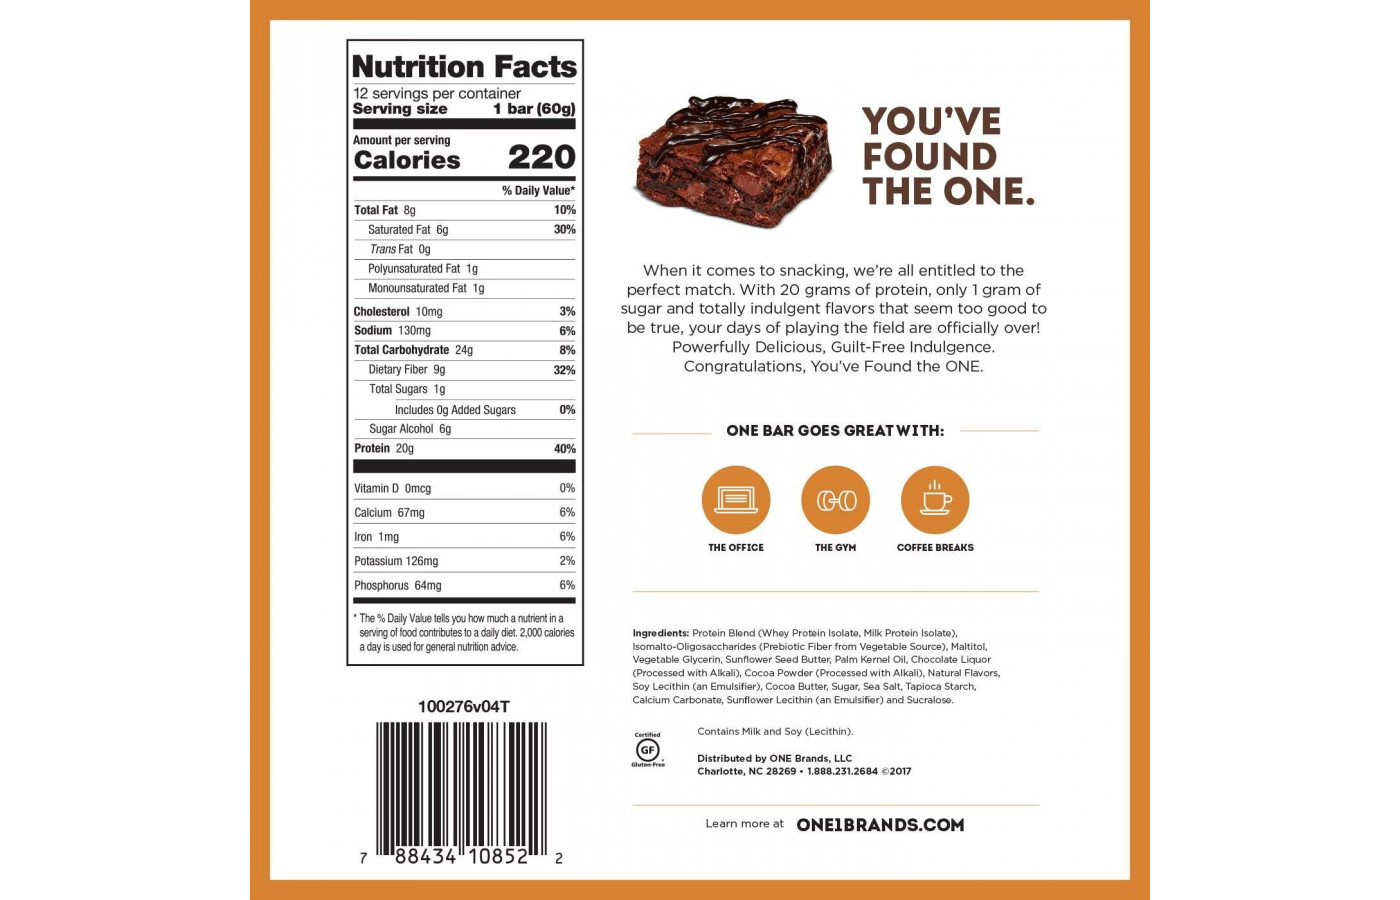 One Choco Brownie nutrition facts